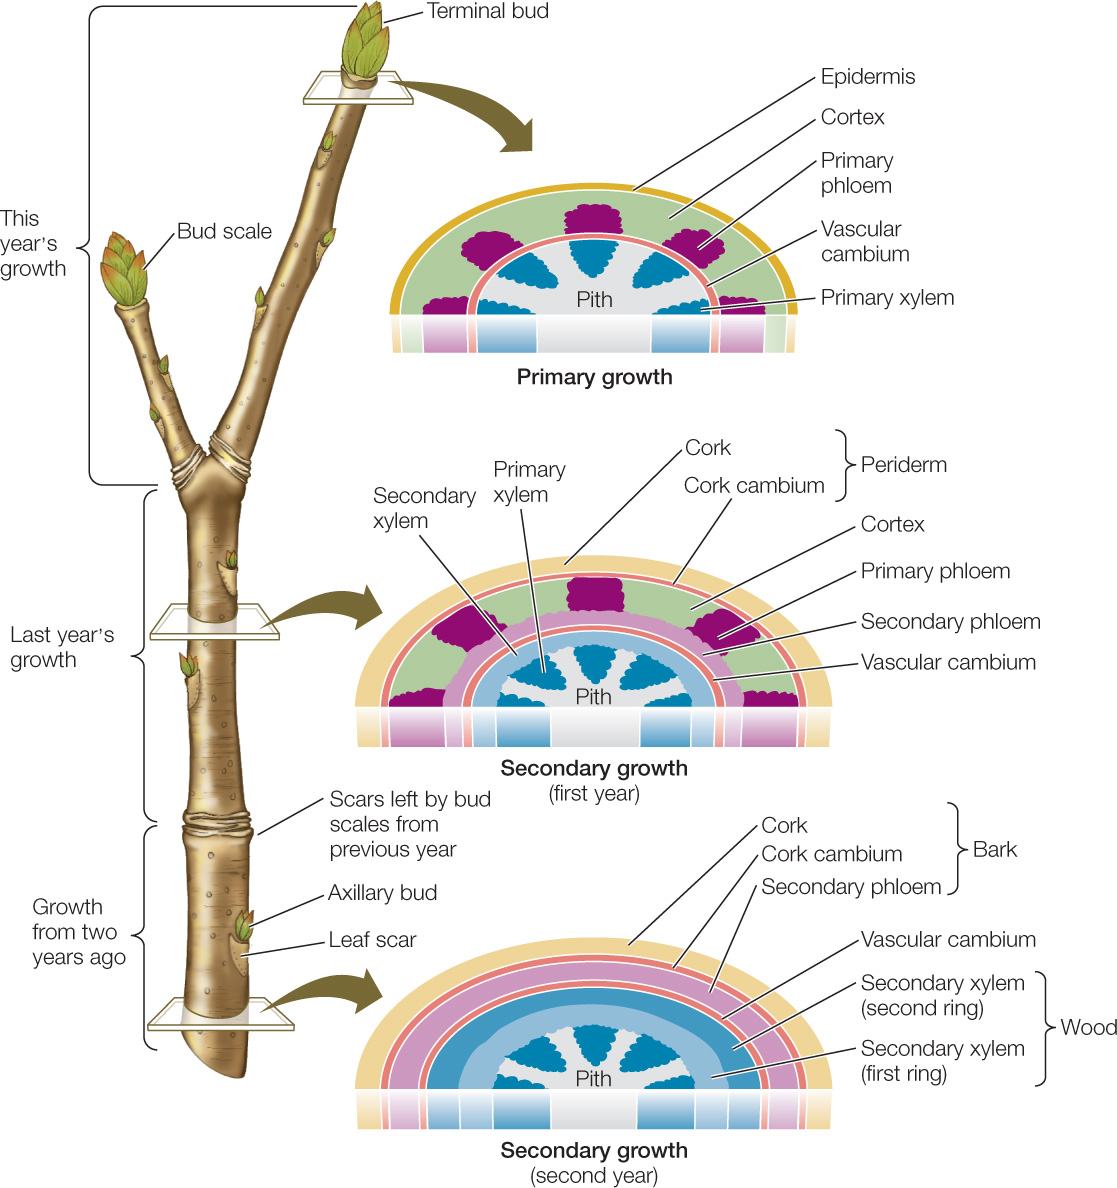 hight resolution of each year the vascular cambium produces a new layer of secondary xylem and a new layer of secondary phloem further increasing the diameter of the stem